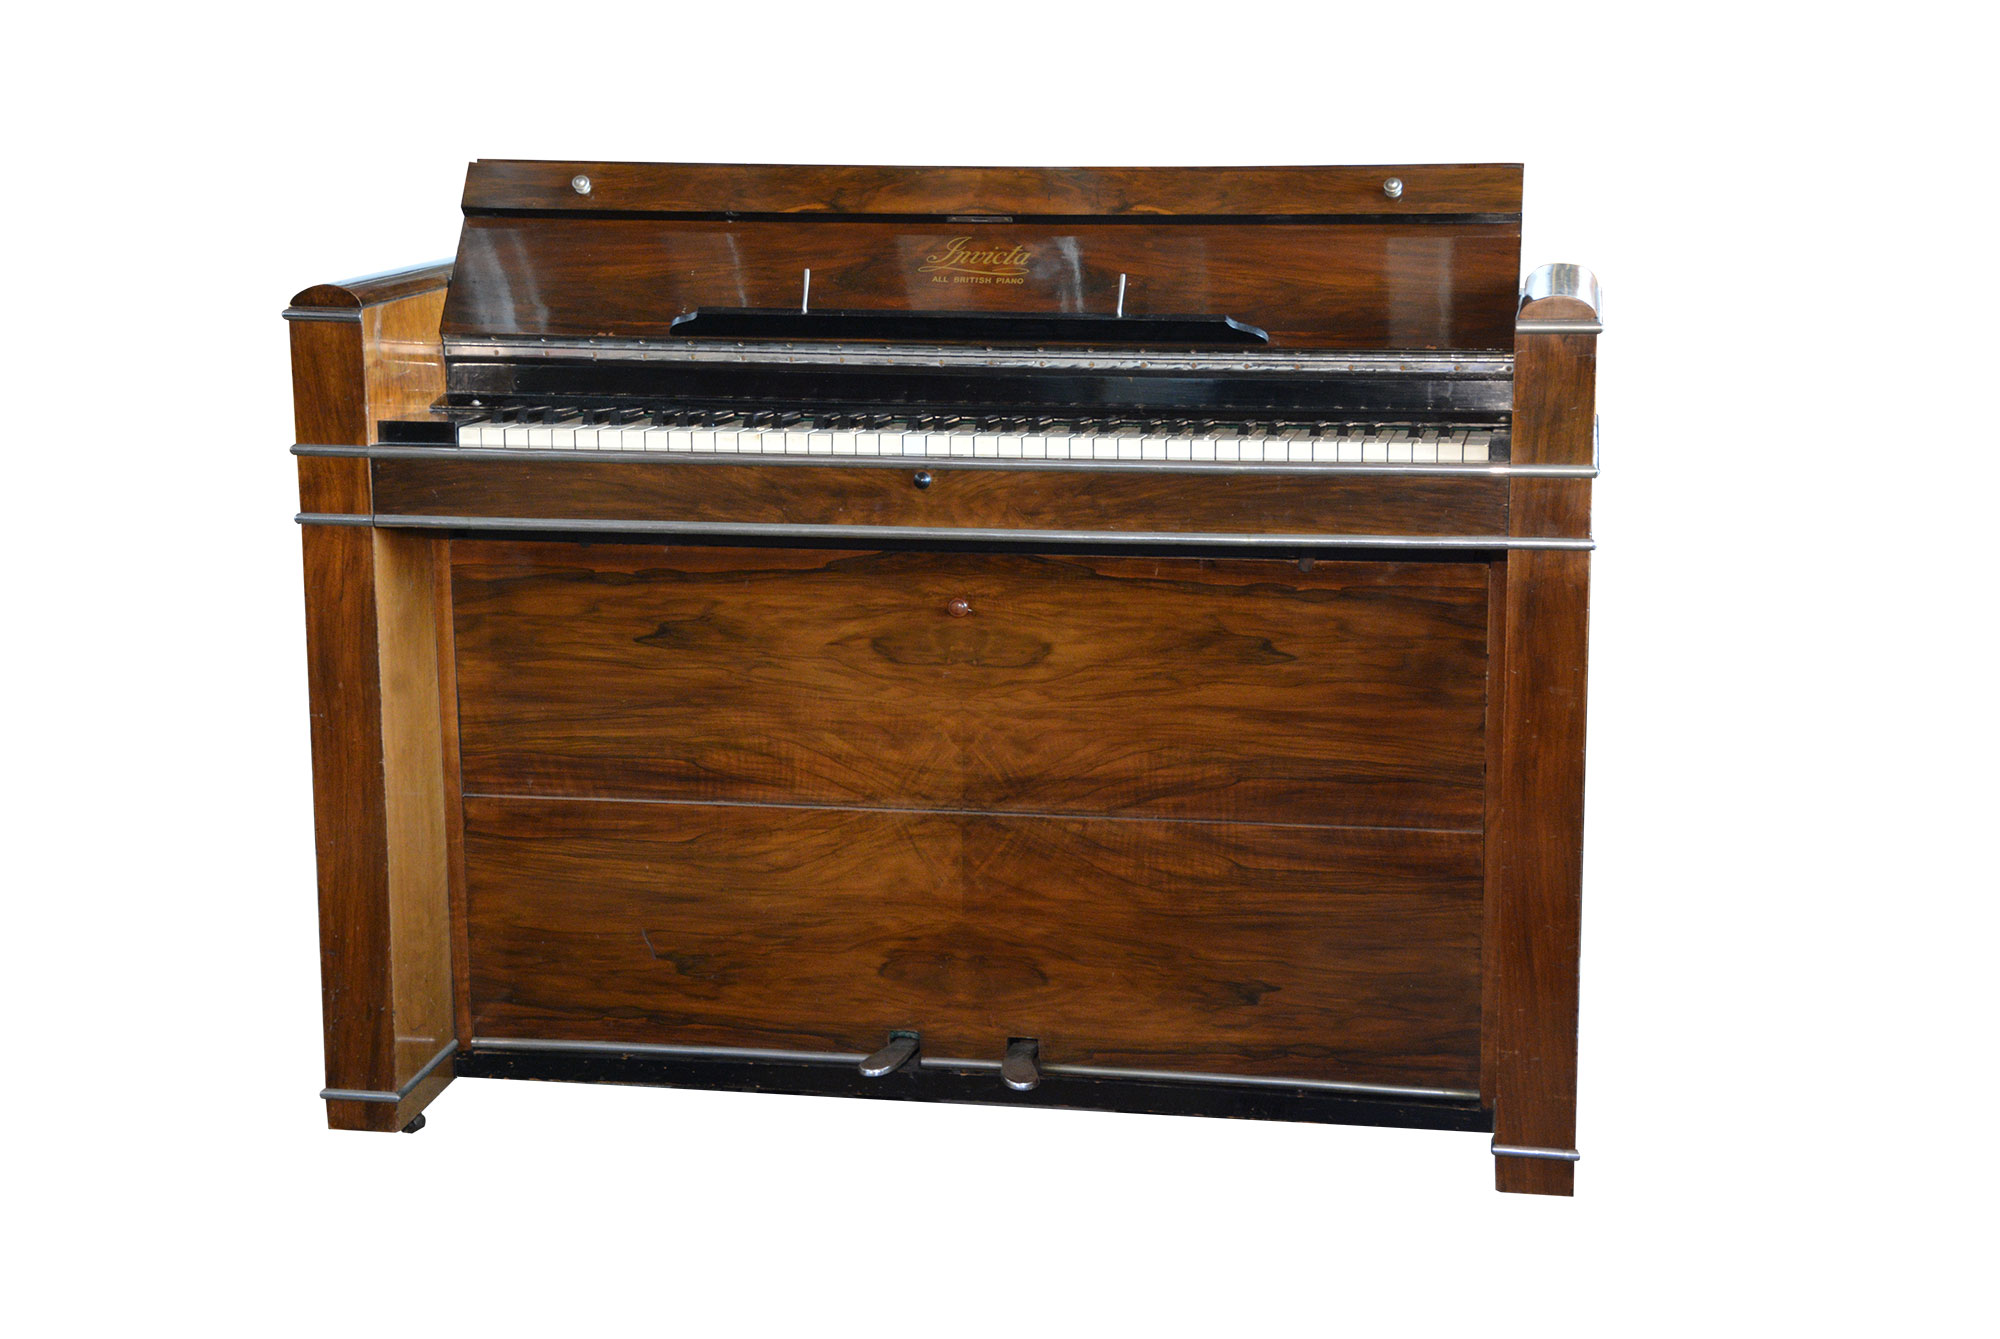 Art Deco Upright Piano